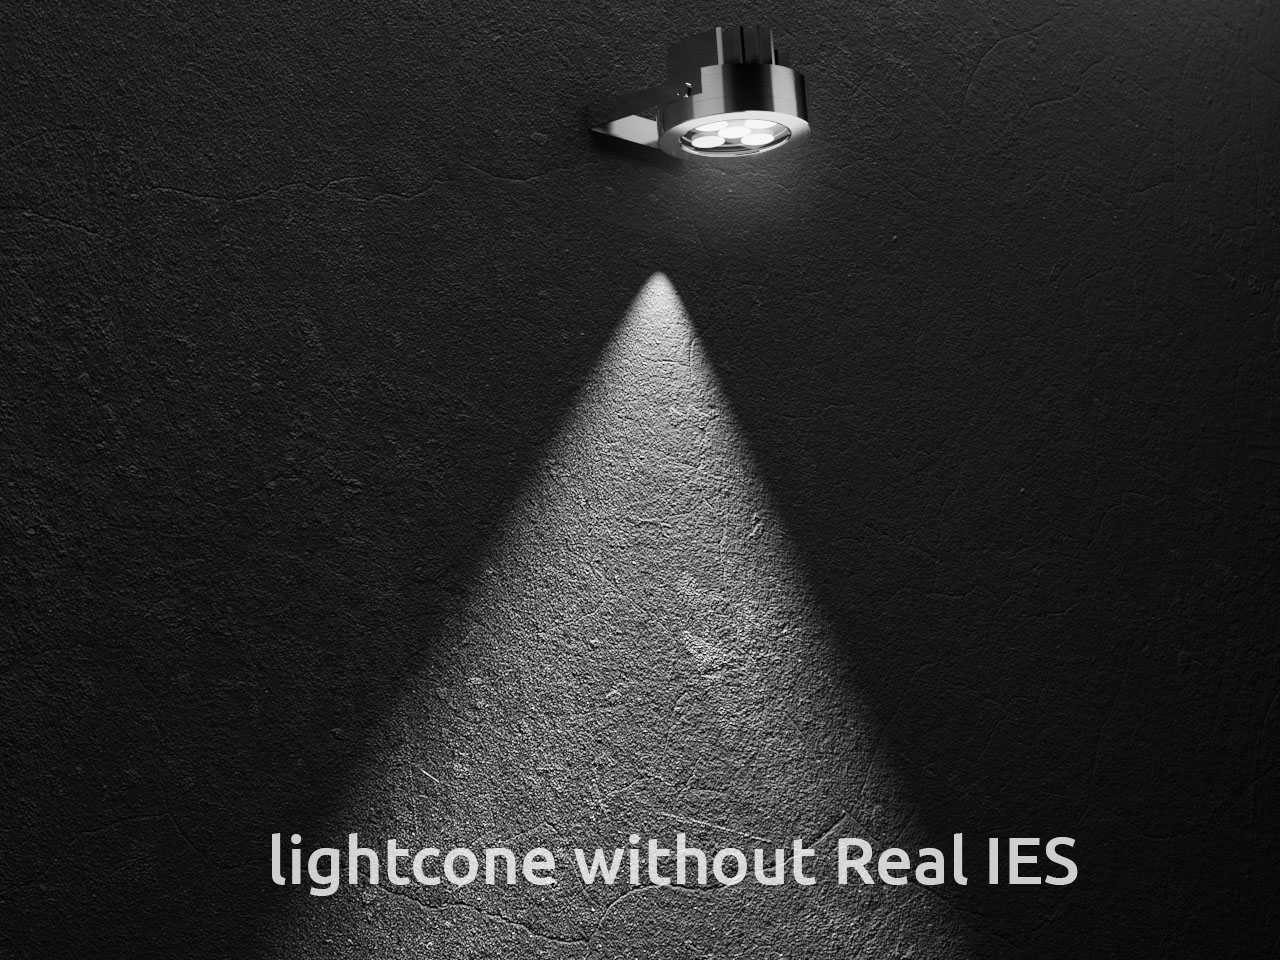 3d light without Real IES